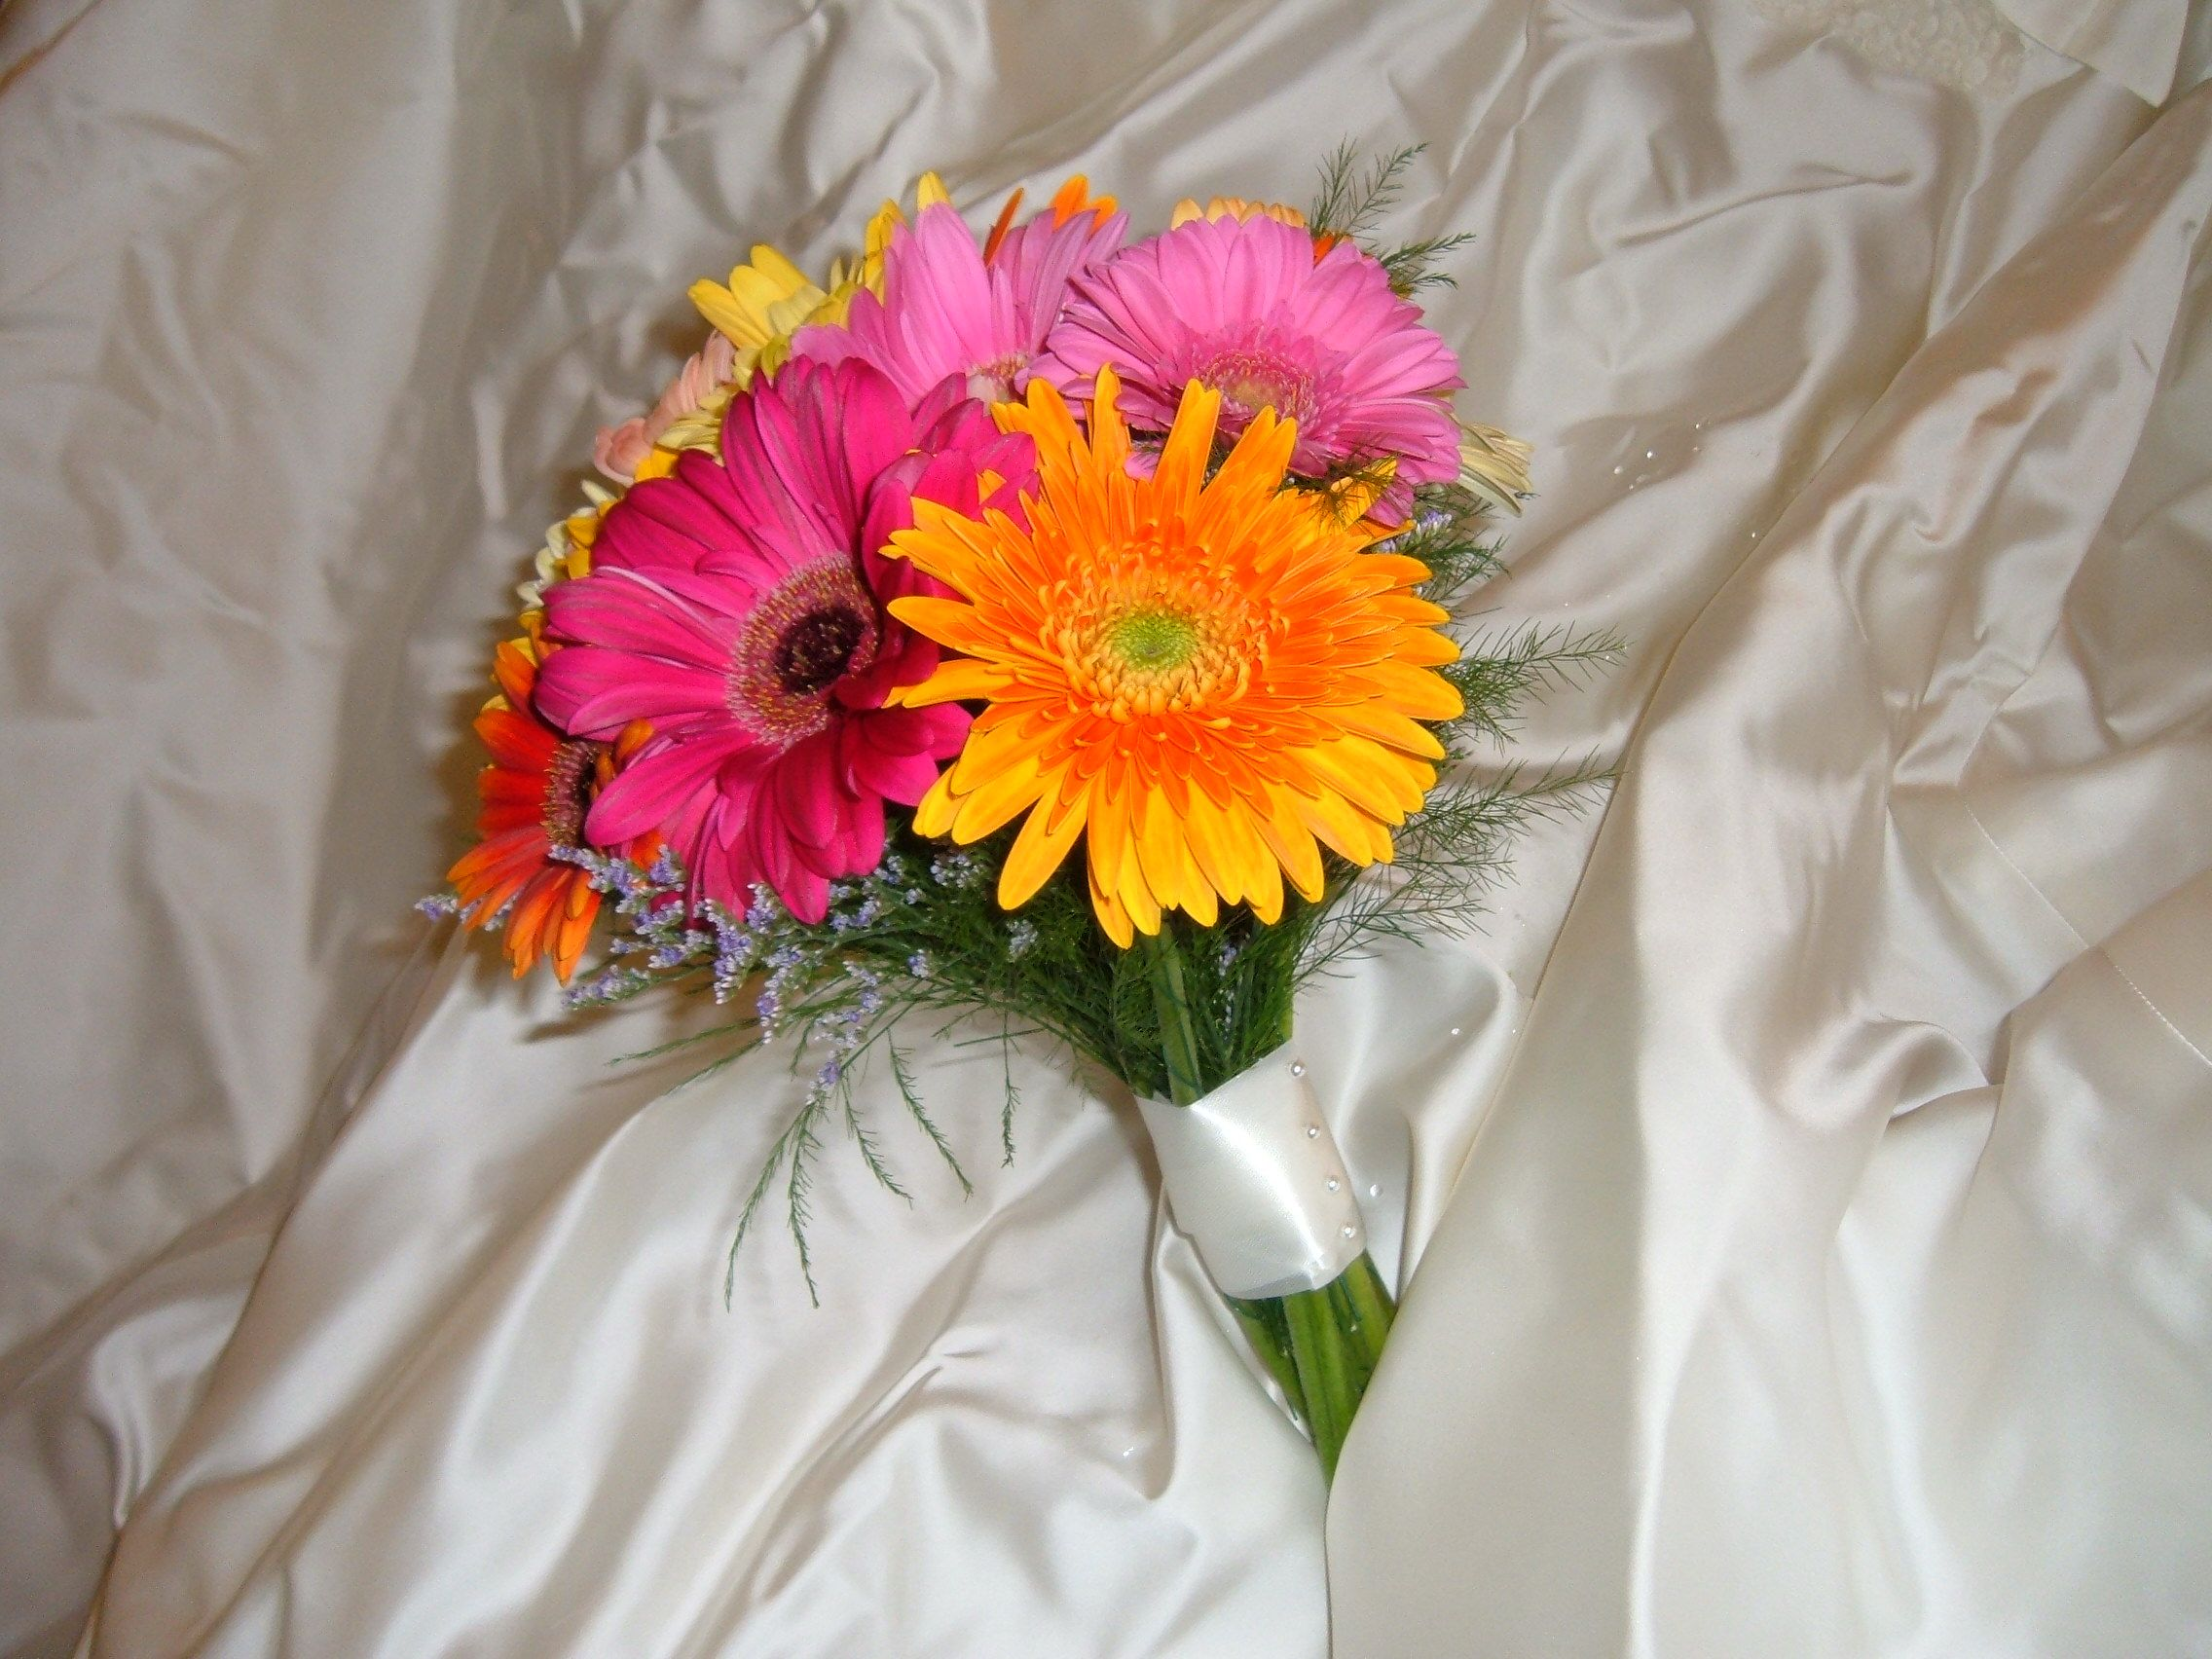 Gerber daisy and hydrangea floral arrangements cross lanes floral a local flower shop specializing in affordable floral creations for funerals weddings birthdays and hospital gifts local flower delivery to charleston izmirmasajfo